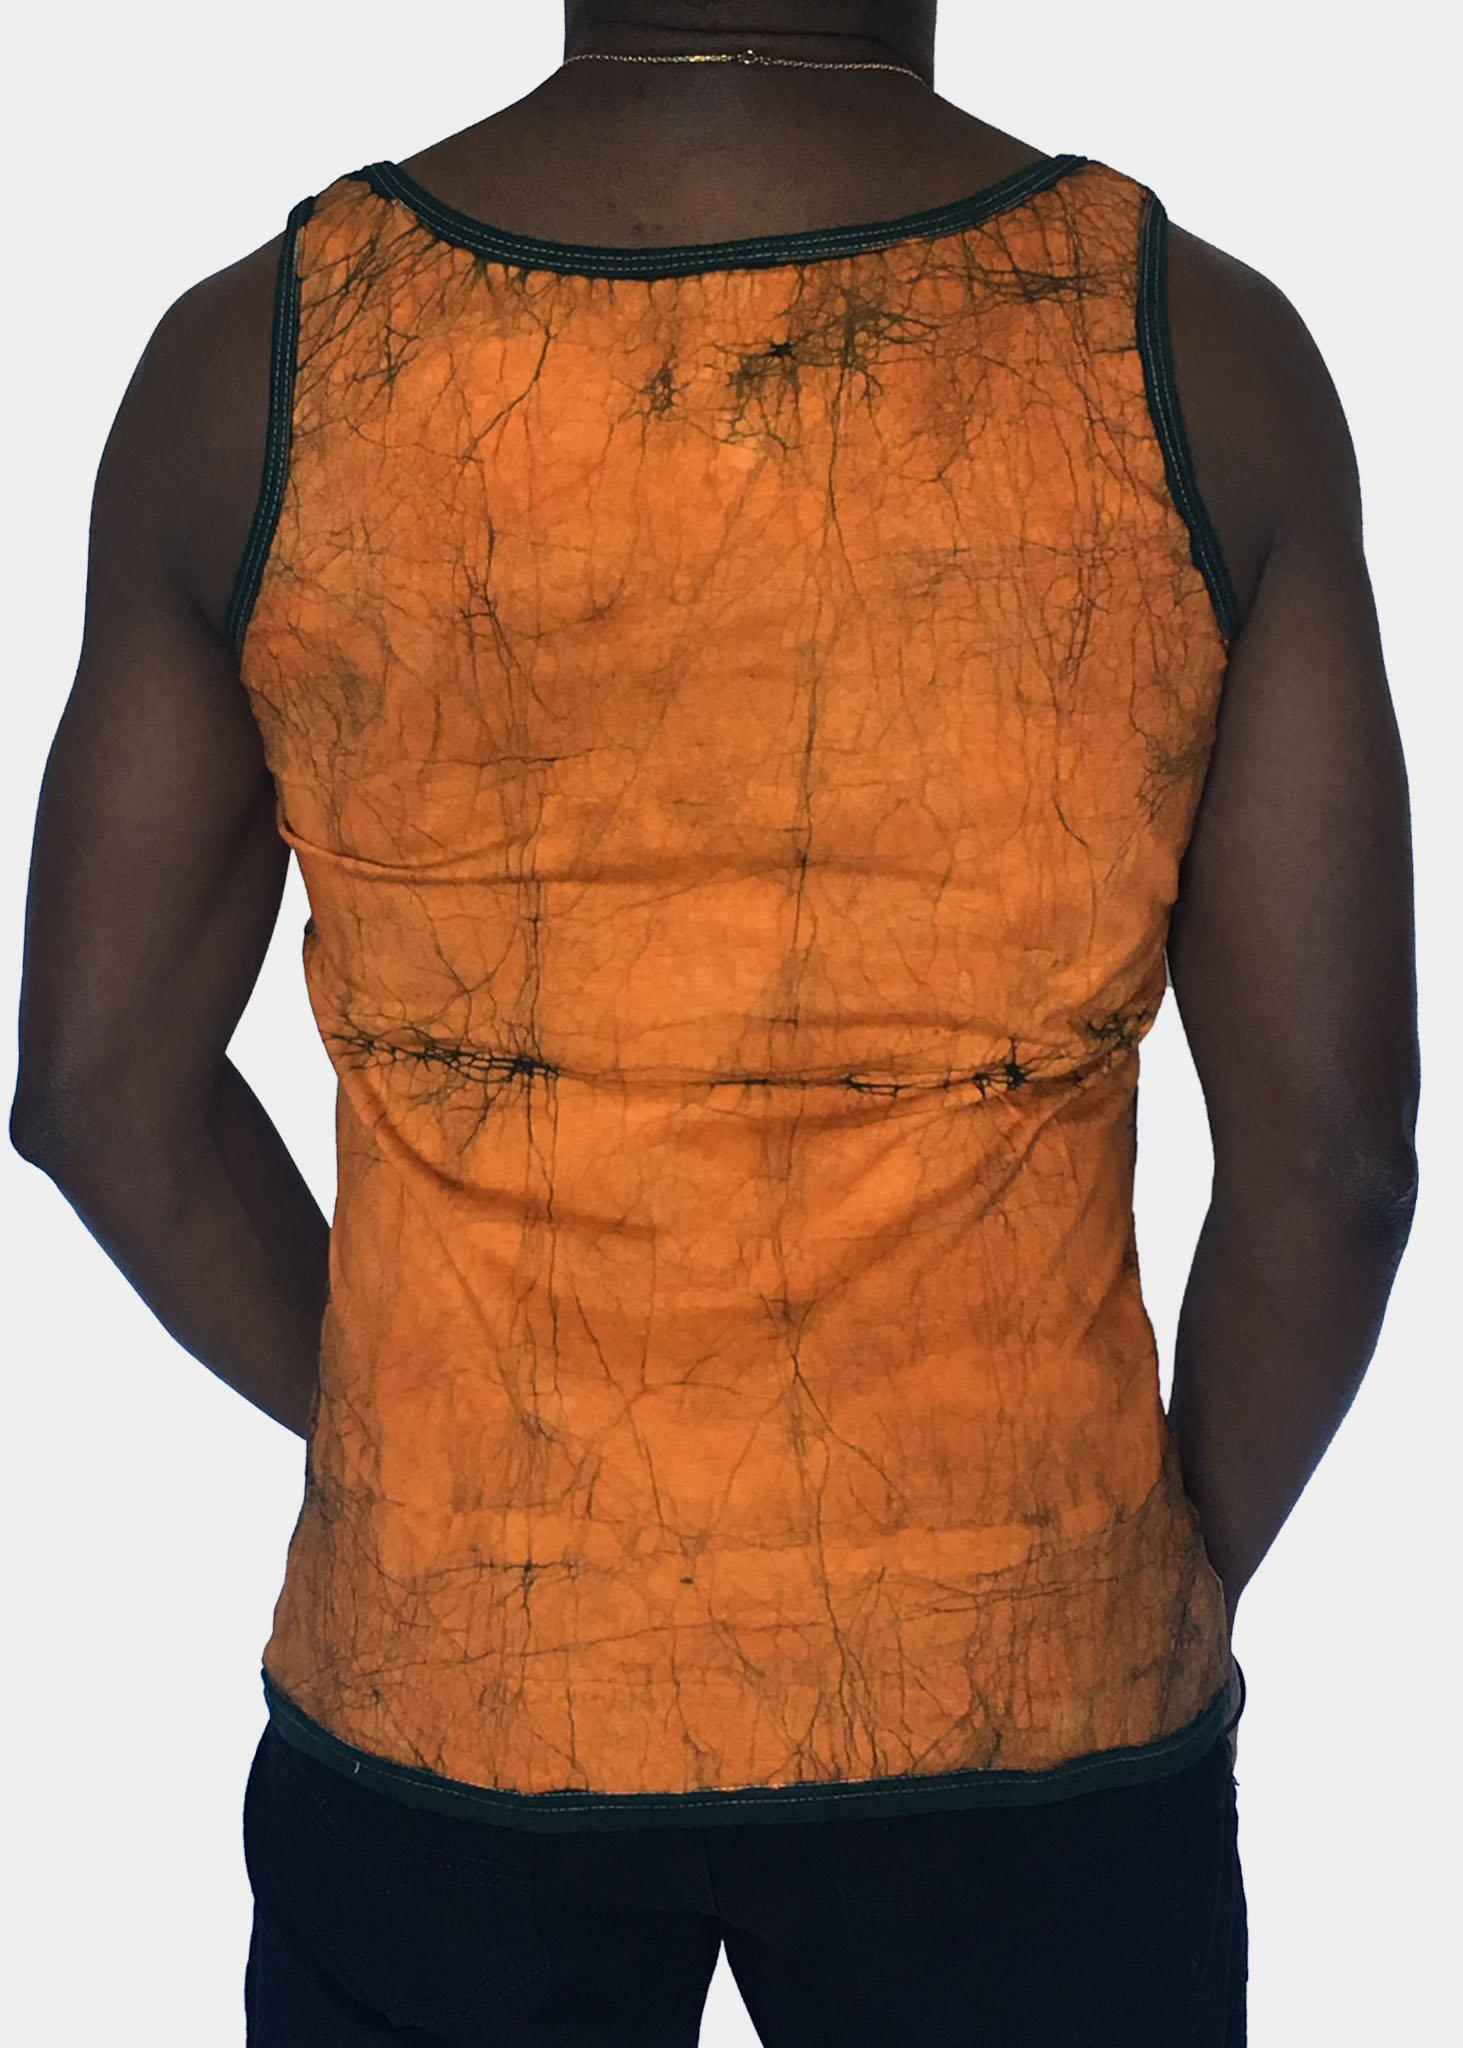 Orange and Green Fitted  Tank Top with African and Adinkra Symbols